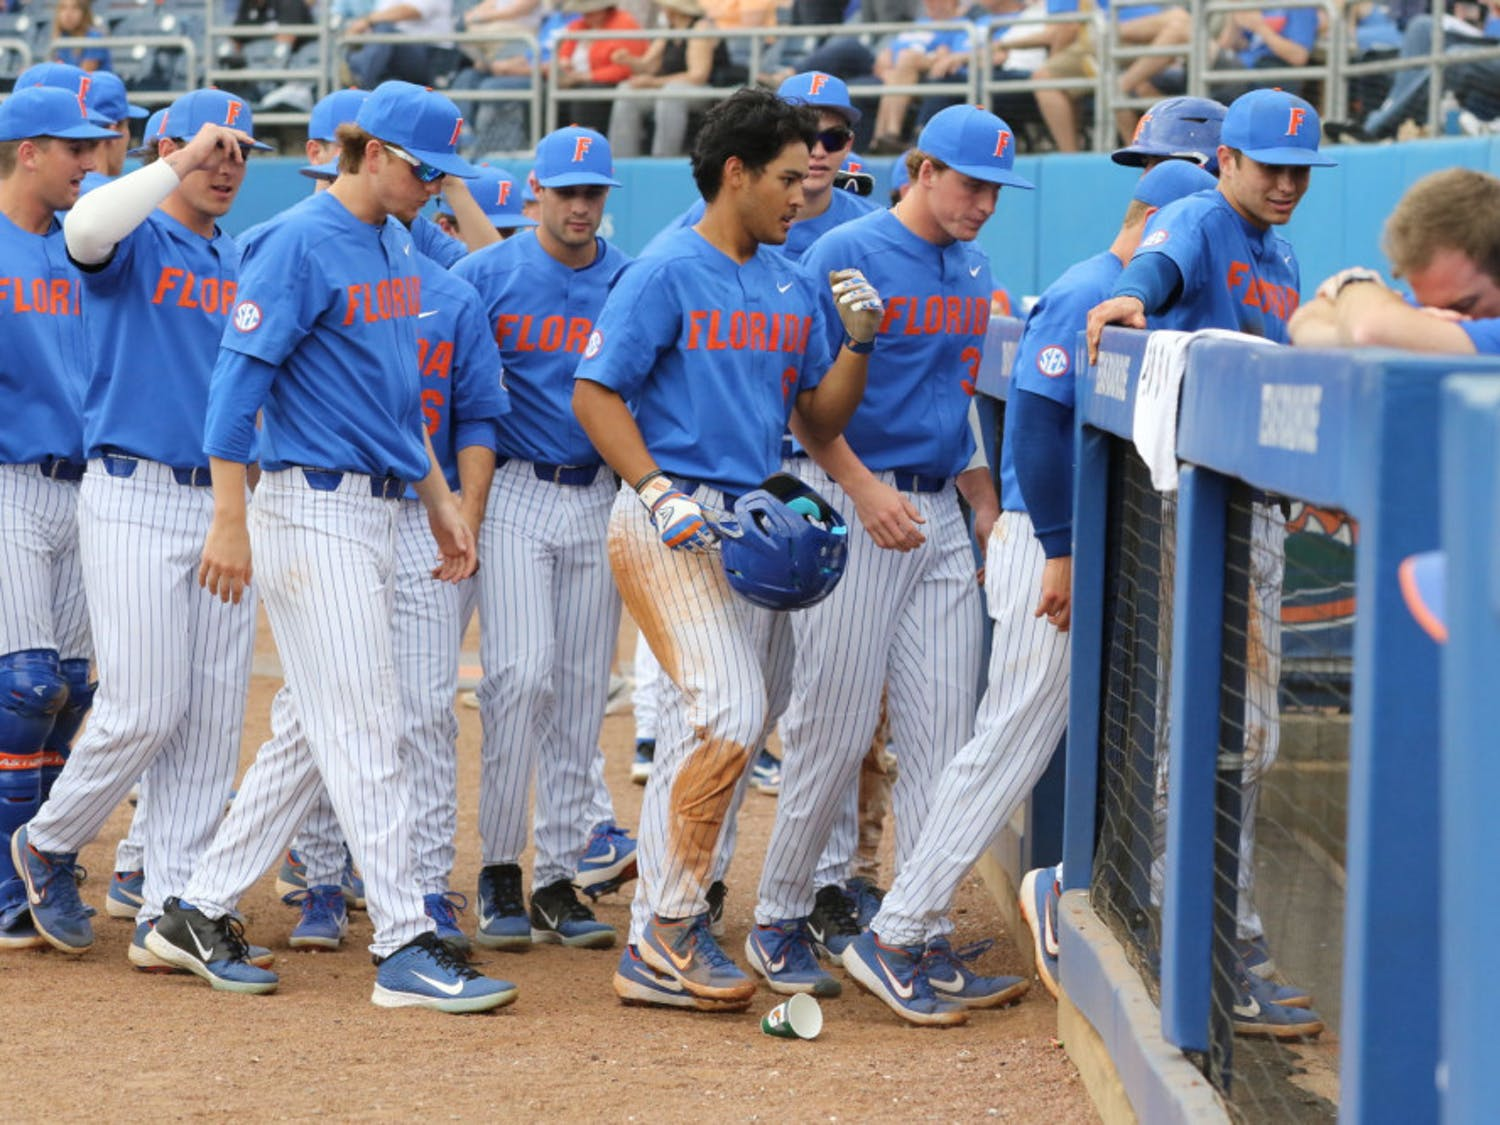 Since Kevin O'Sullivan took over as coach in 2008, UF has made the NCAA Tournament 12 consecutive times and has an overall record of 530-253.